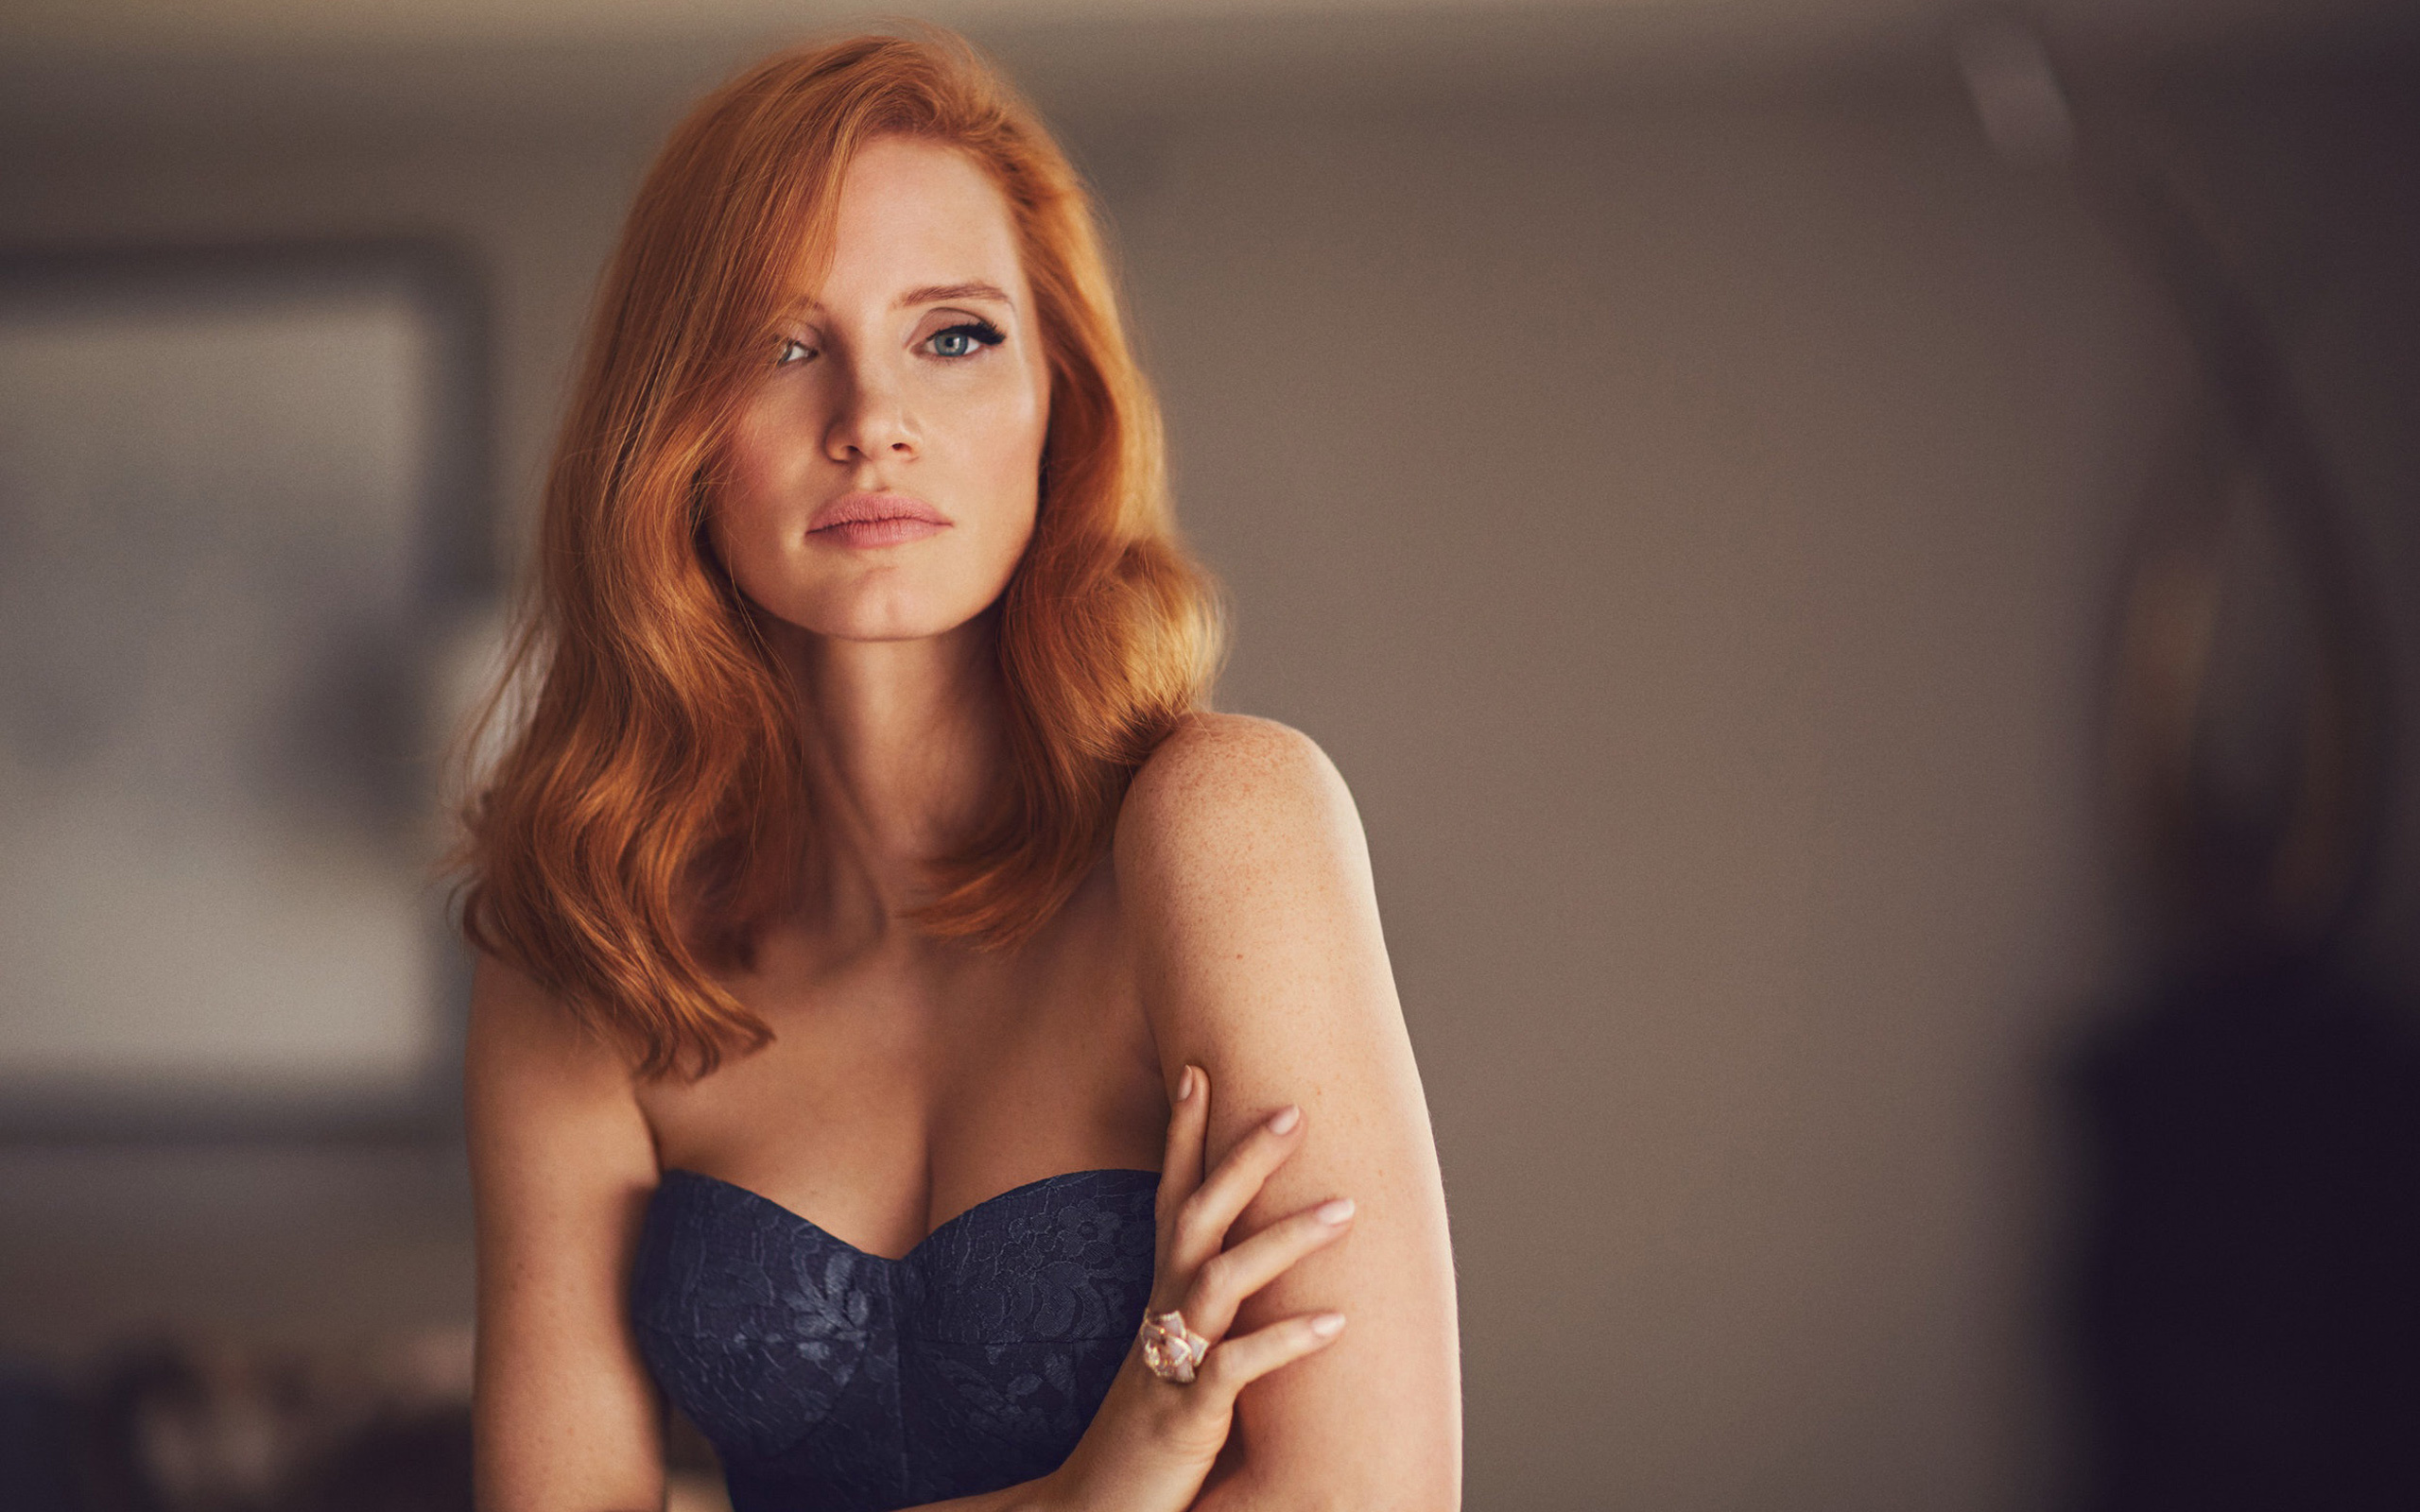 jessica_chastain_2017-wide